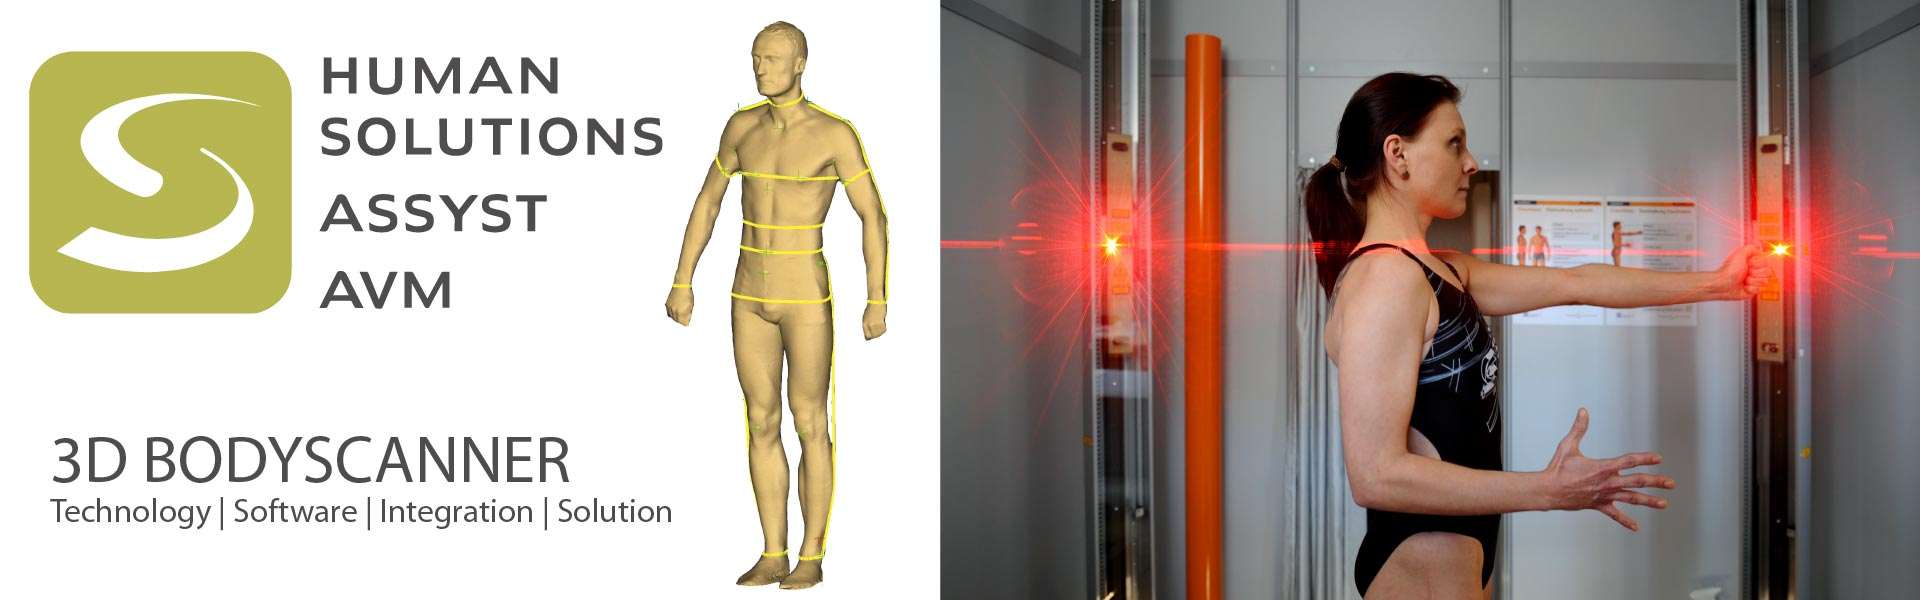 Human-Solutions-Bodyscan-slider-02-01